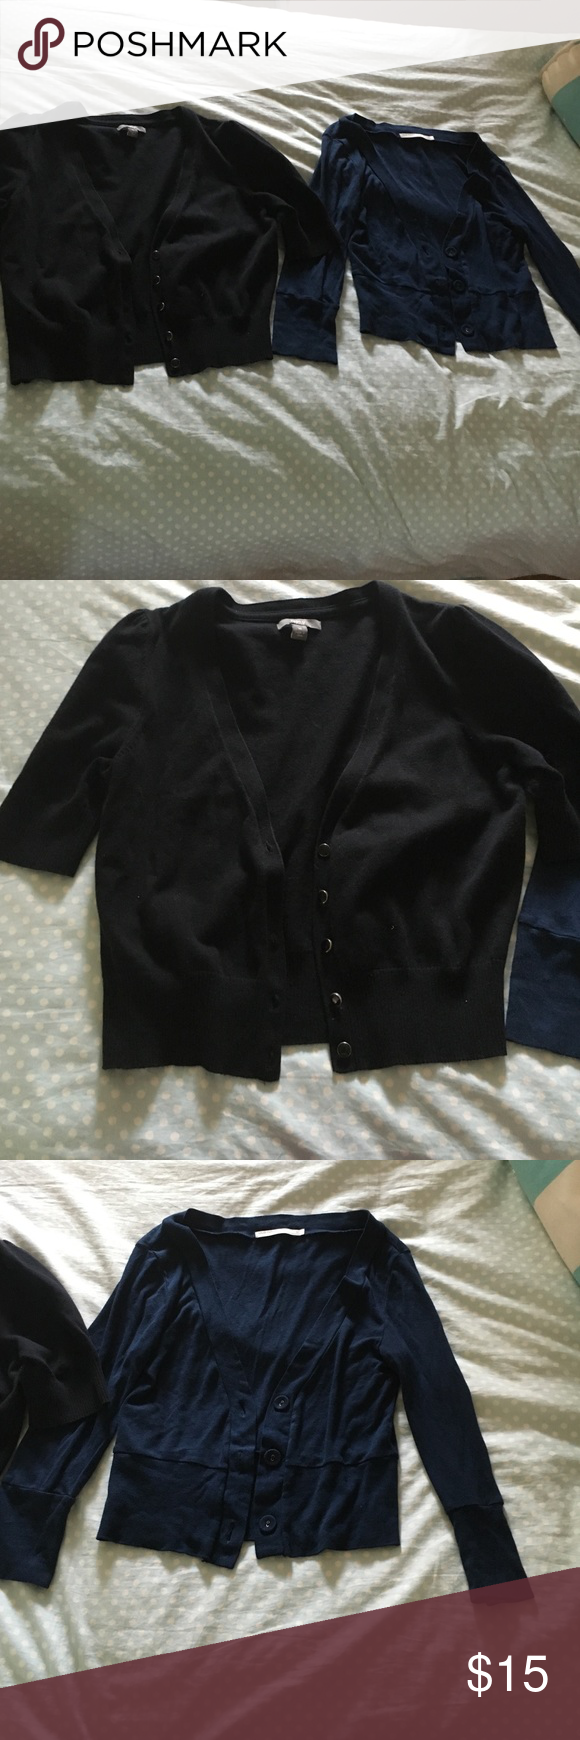 Cardigan Bundle! One black short sleeve cardigan, one blue 3/4 sleeve cardigan. Both are short, perfect to wear over dresses! Both have been gently used but all buttons are intact. Both are size medium. Make an offer! Sweaters Cardigans